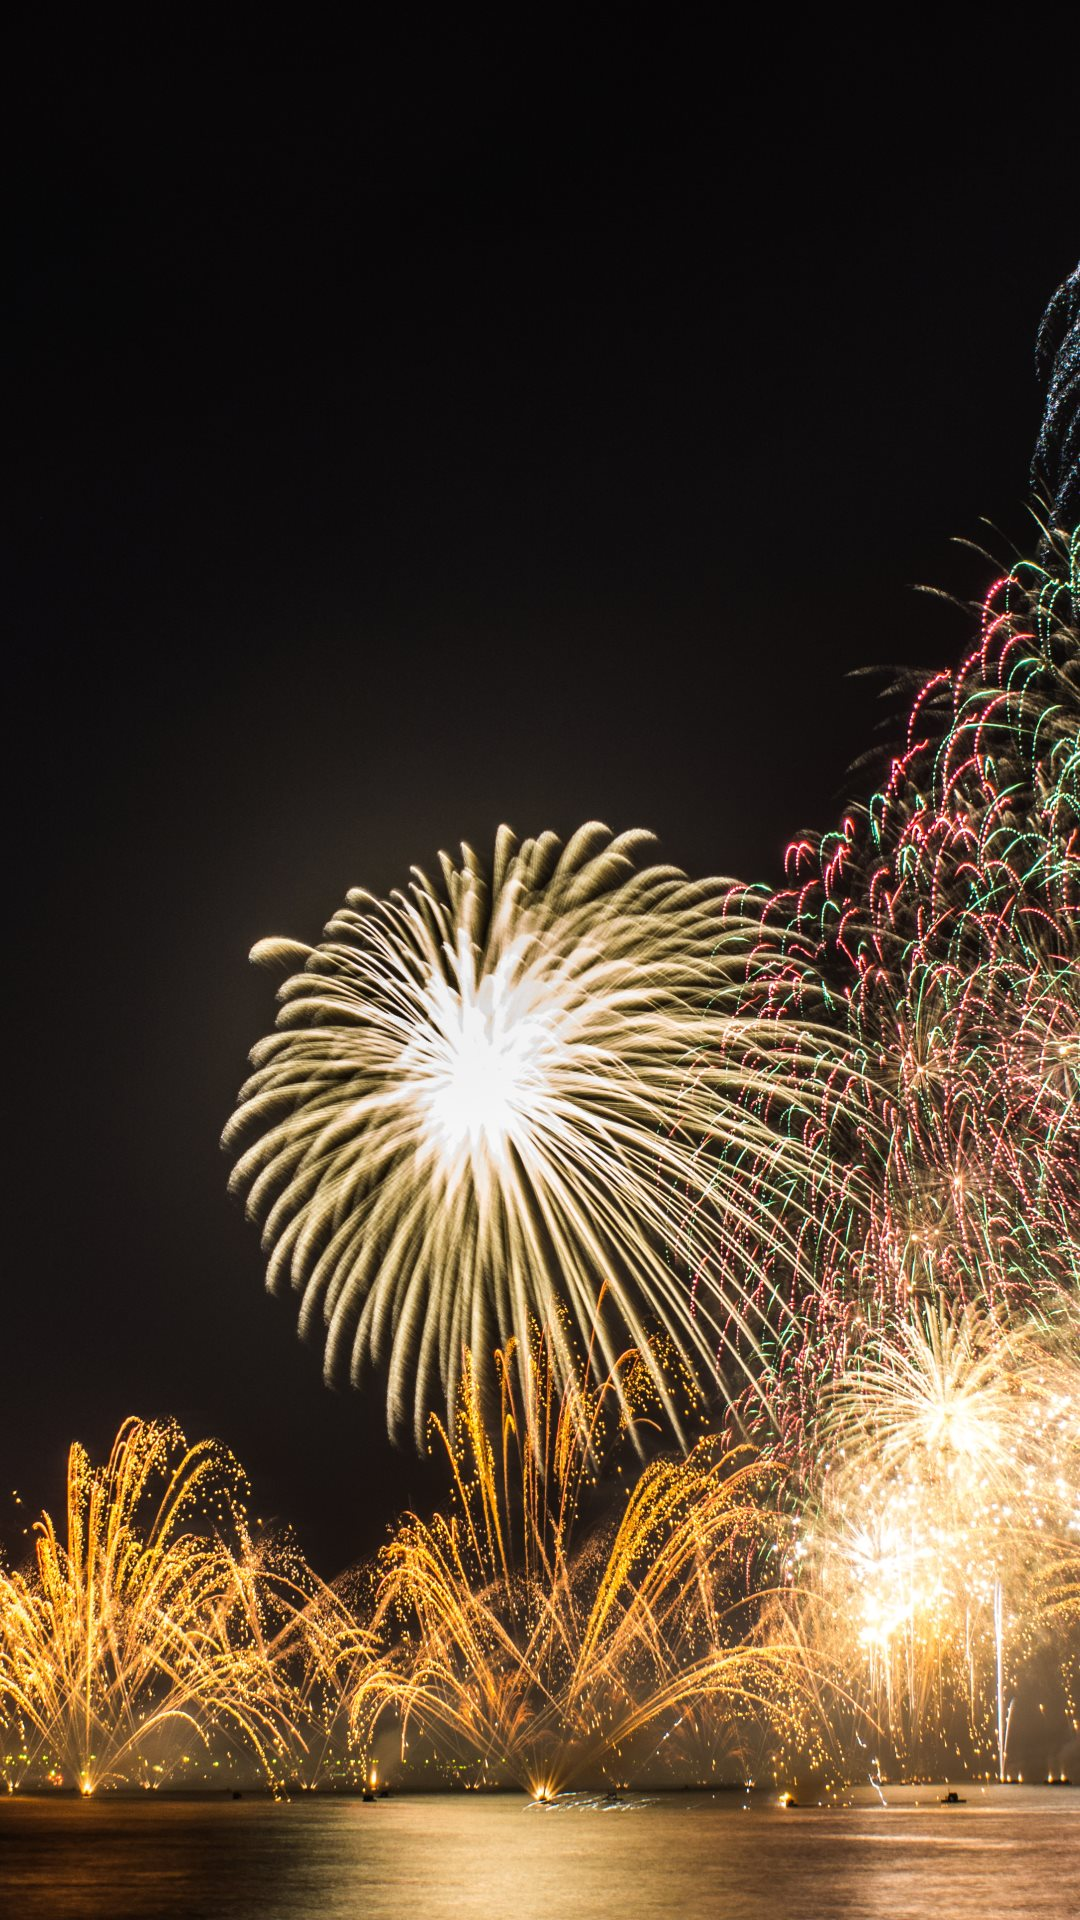 4K Fireworks Wallpapers High Quality   Download Free